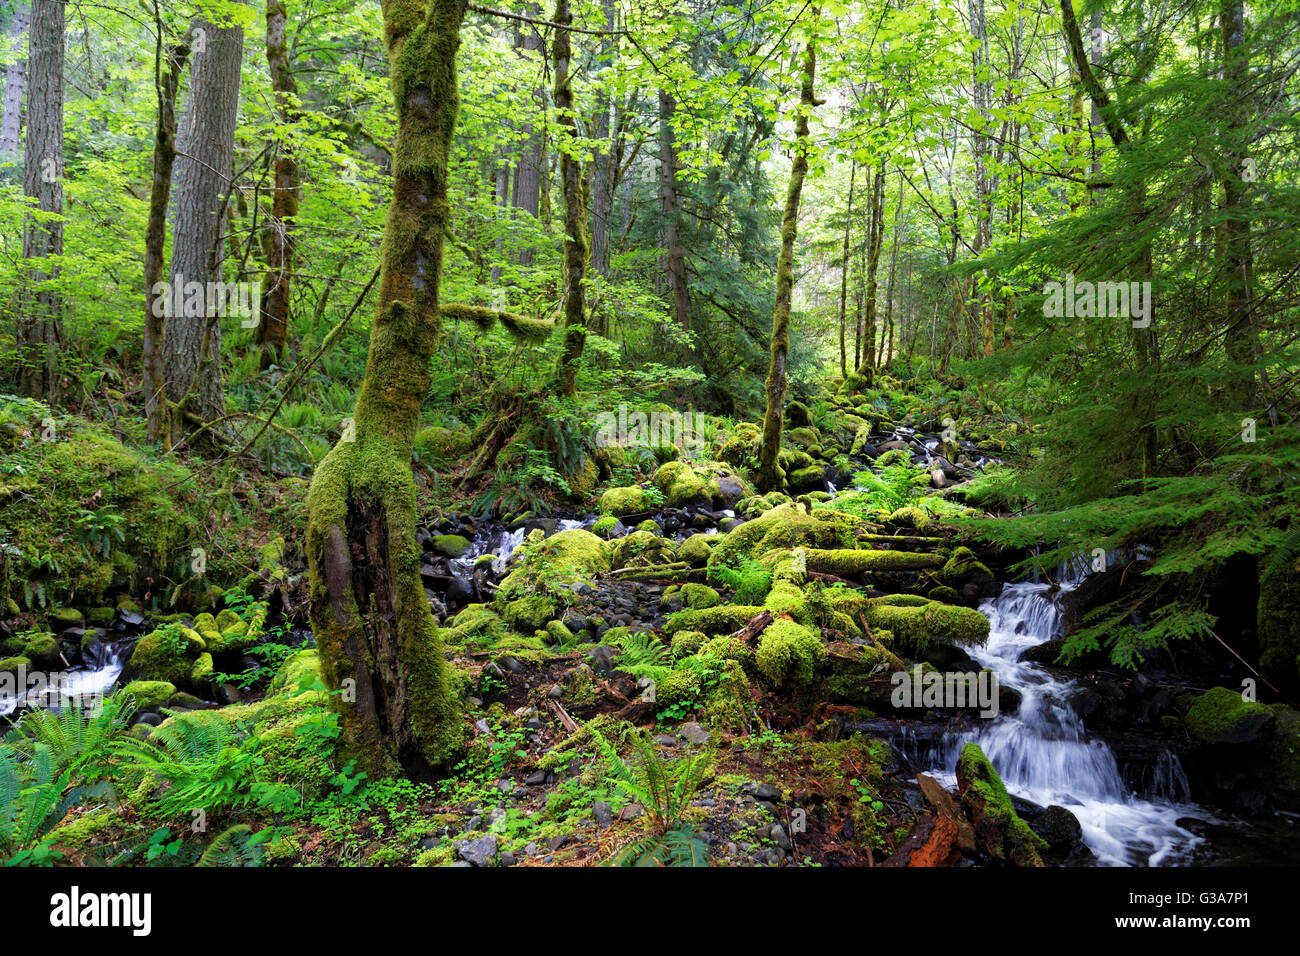 42,138.08926 Creek flowing down hill through moss covered rock boulders and dead logs under high dark forest sunlit - Stock Image